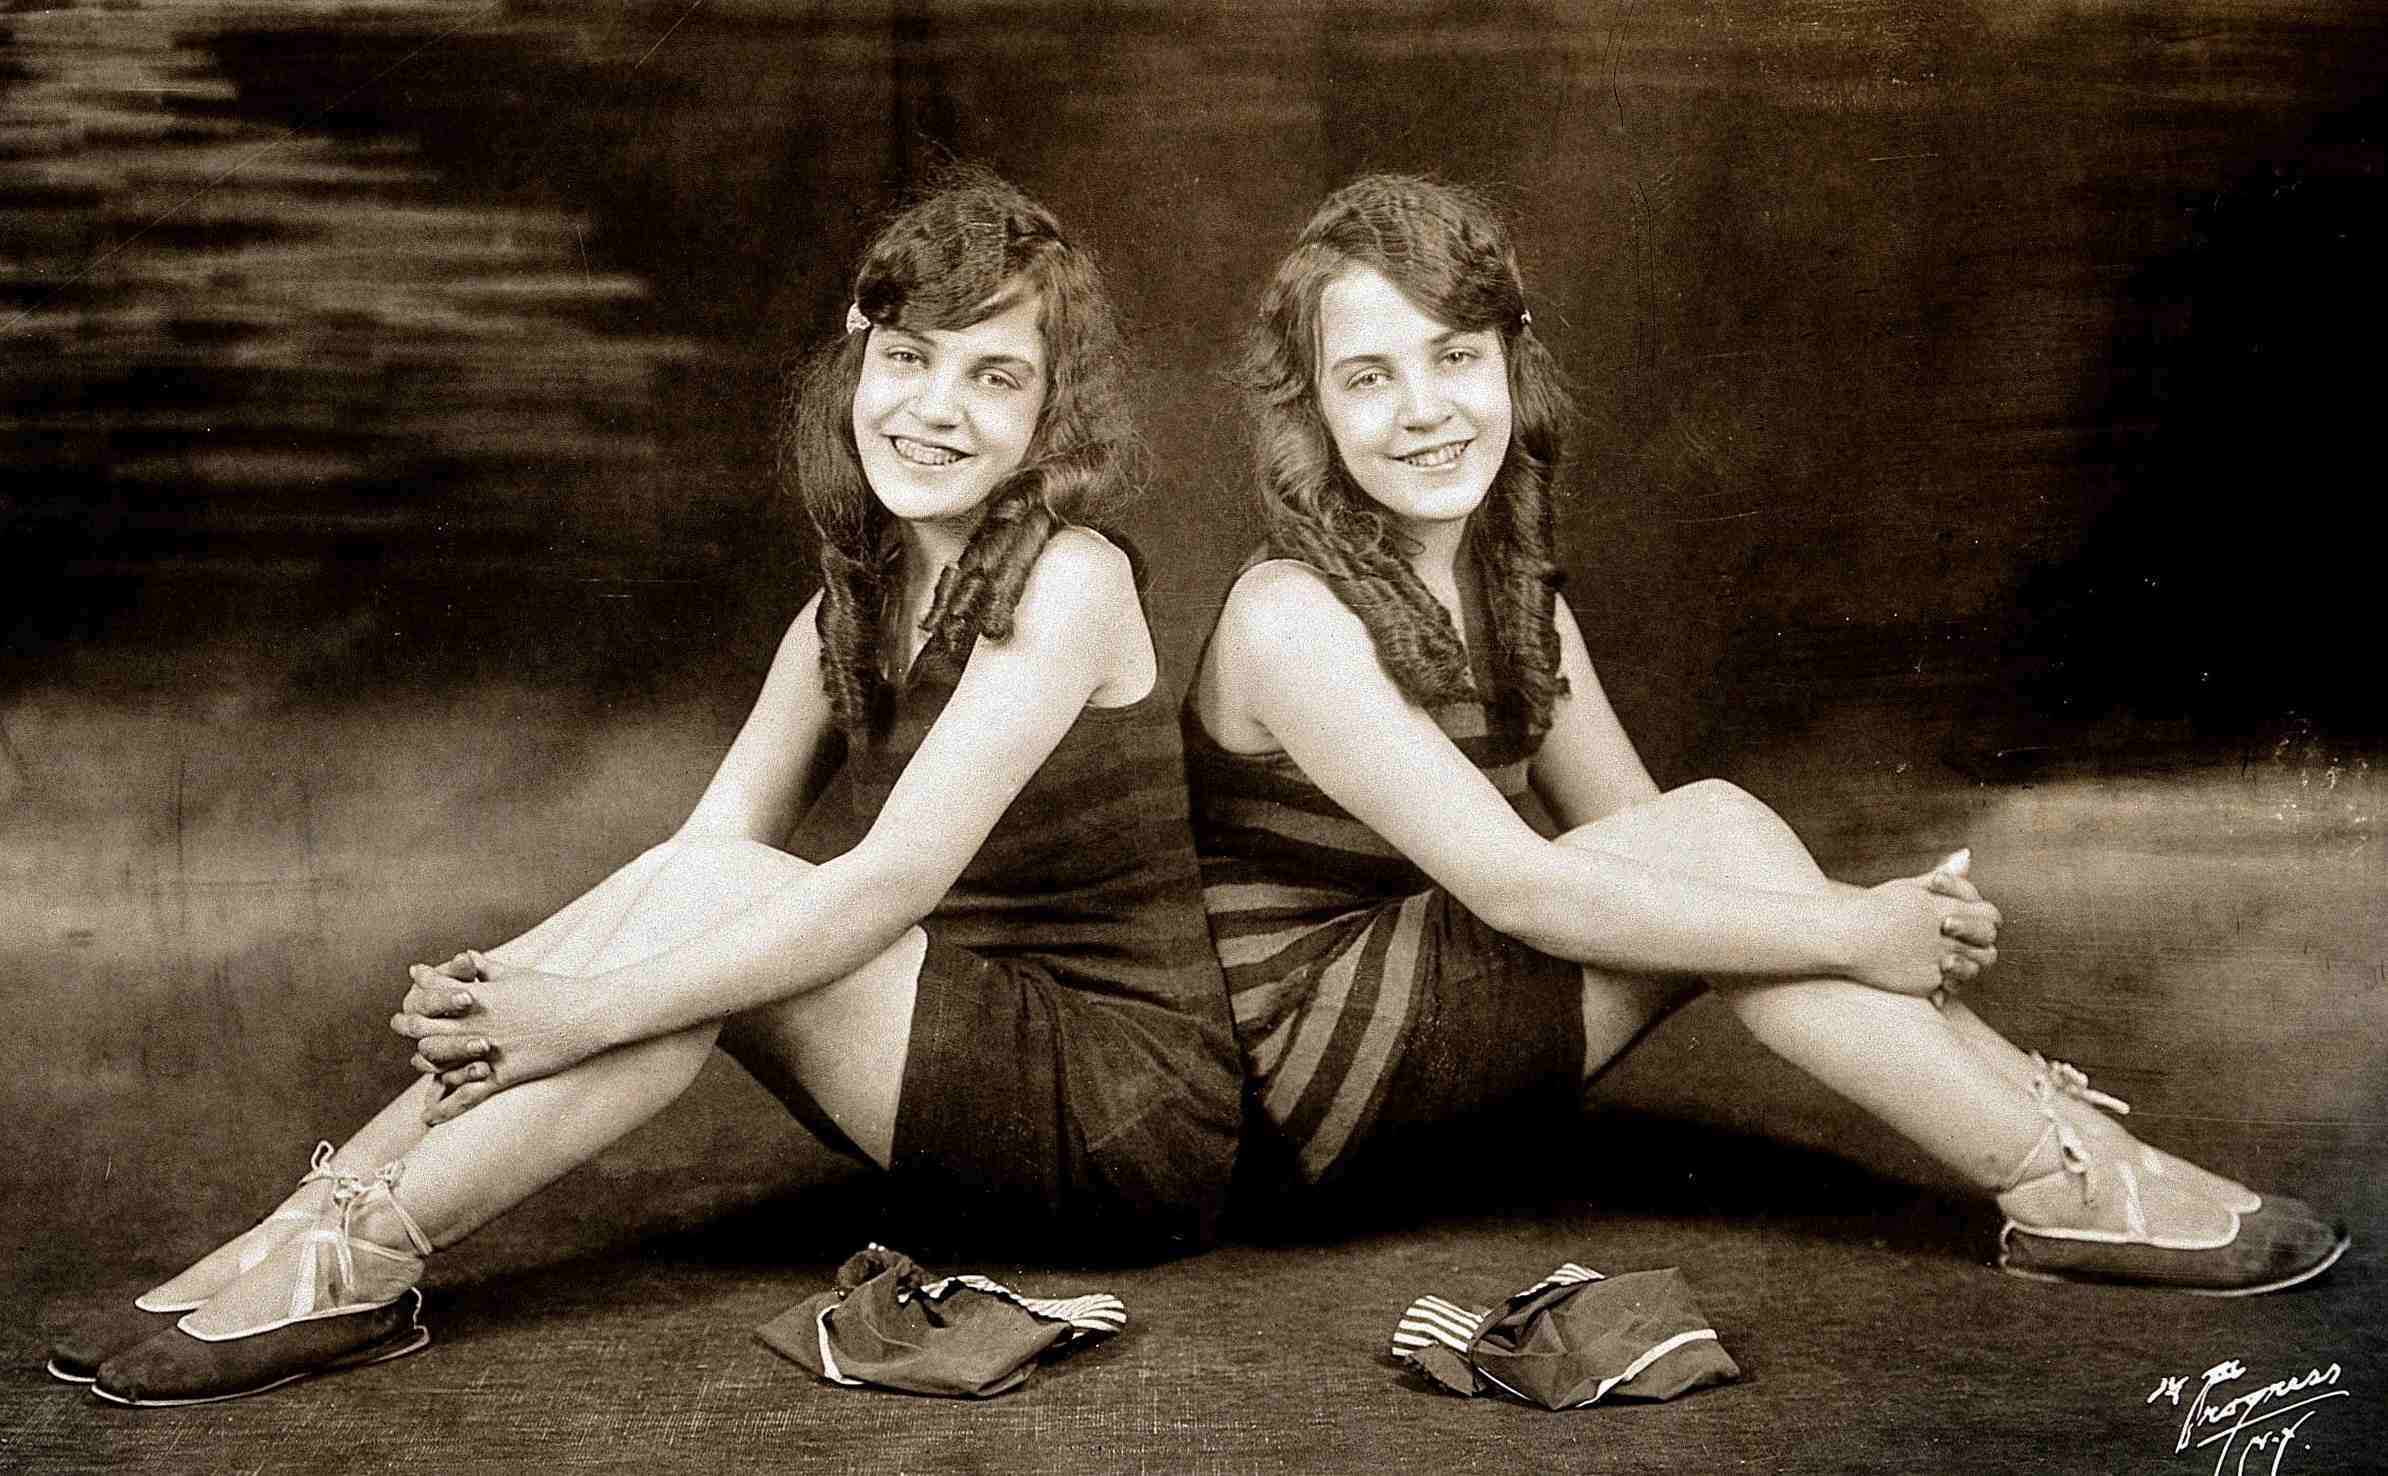 Daisy and Violet Hilton, conjoined twins